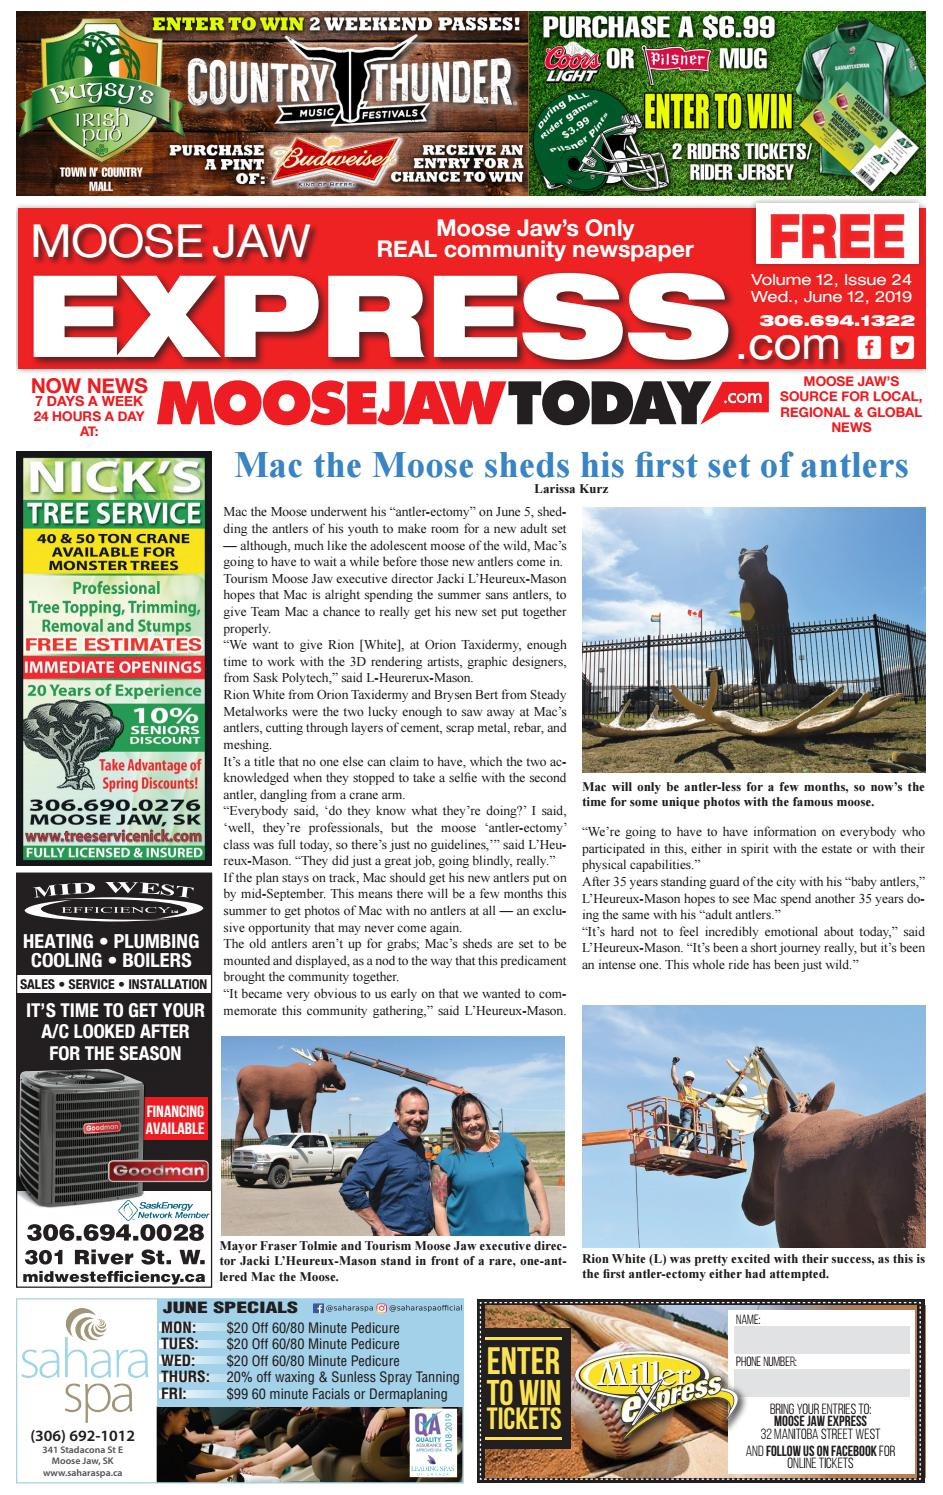 b4998de45a Moose Jaw Express by Moose Jaw Express - issuu